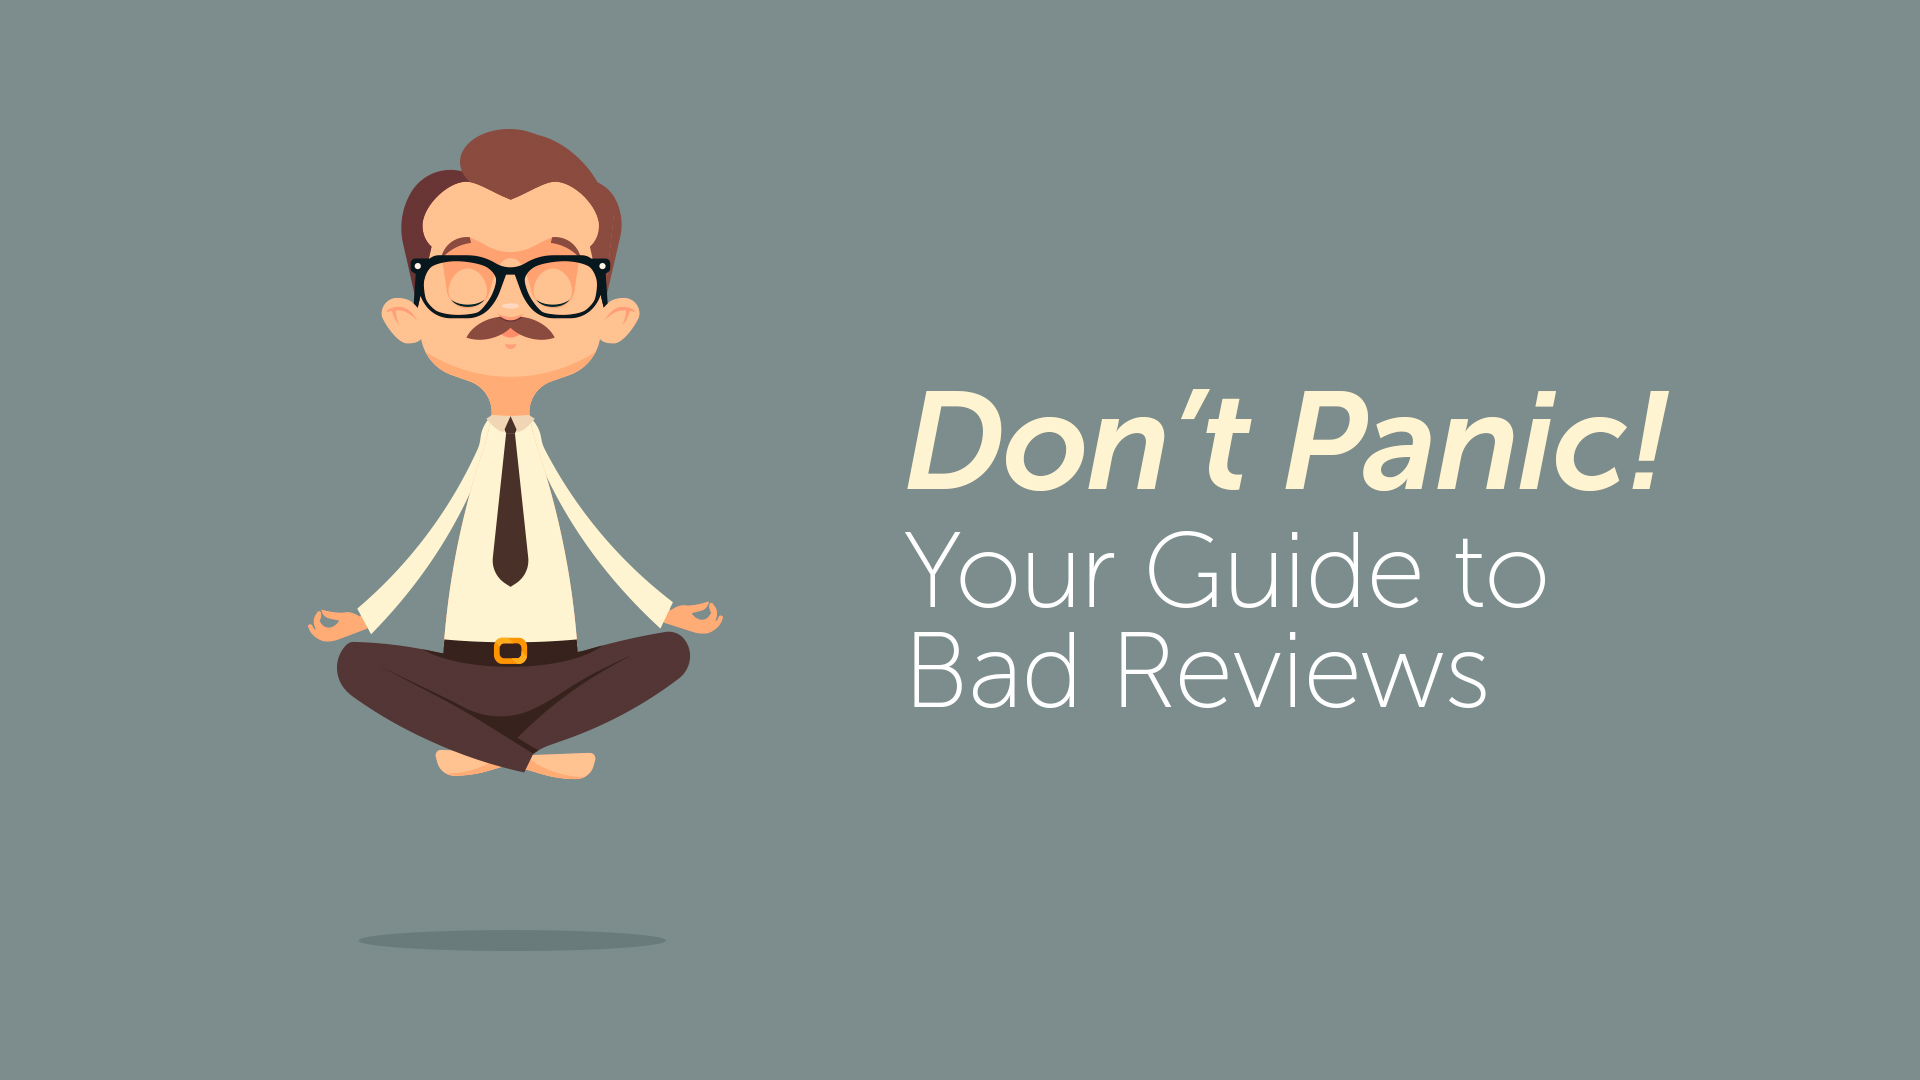 Don't Panic! Your Guide to Bad Reviews